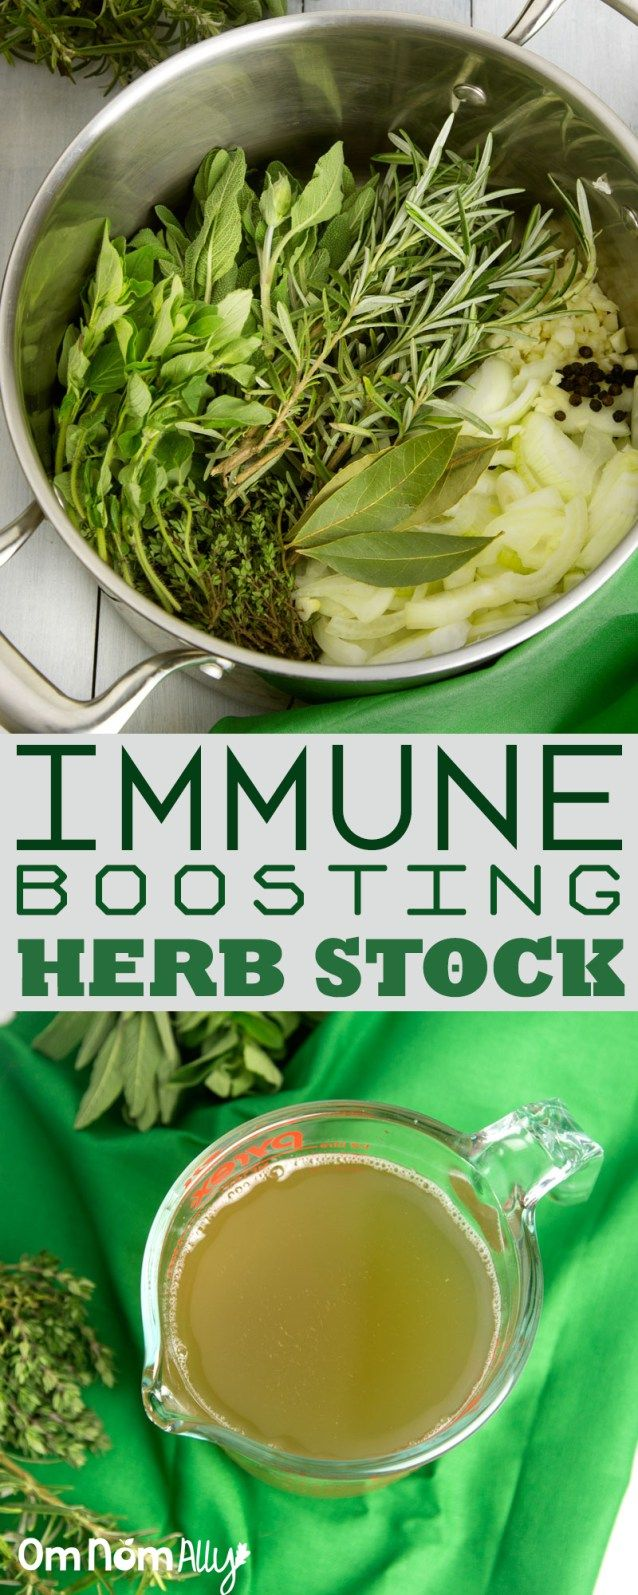 Immune Boosting Garden Herb Stock--for a flavorful meal base that's also antibacterial, anti-inflammatory and immune boosting